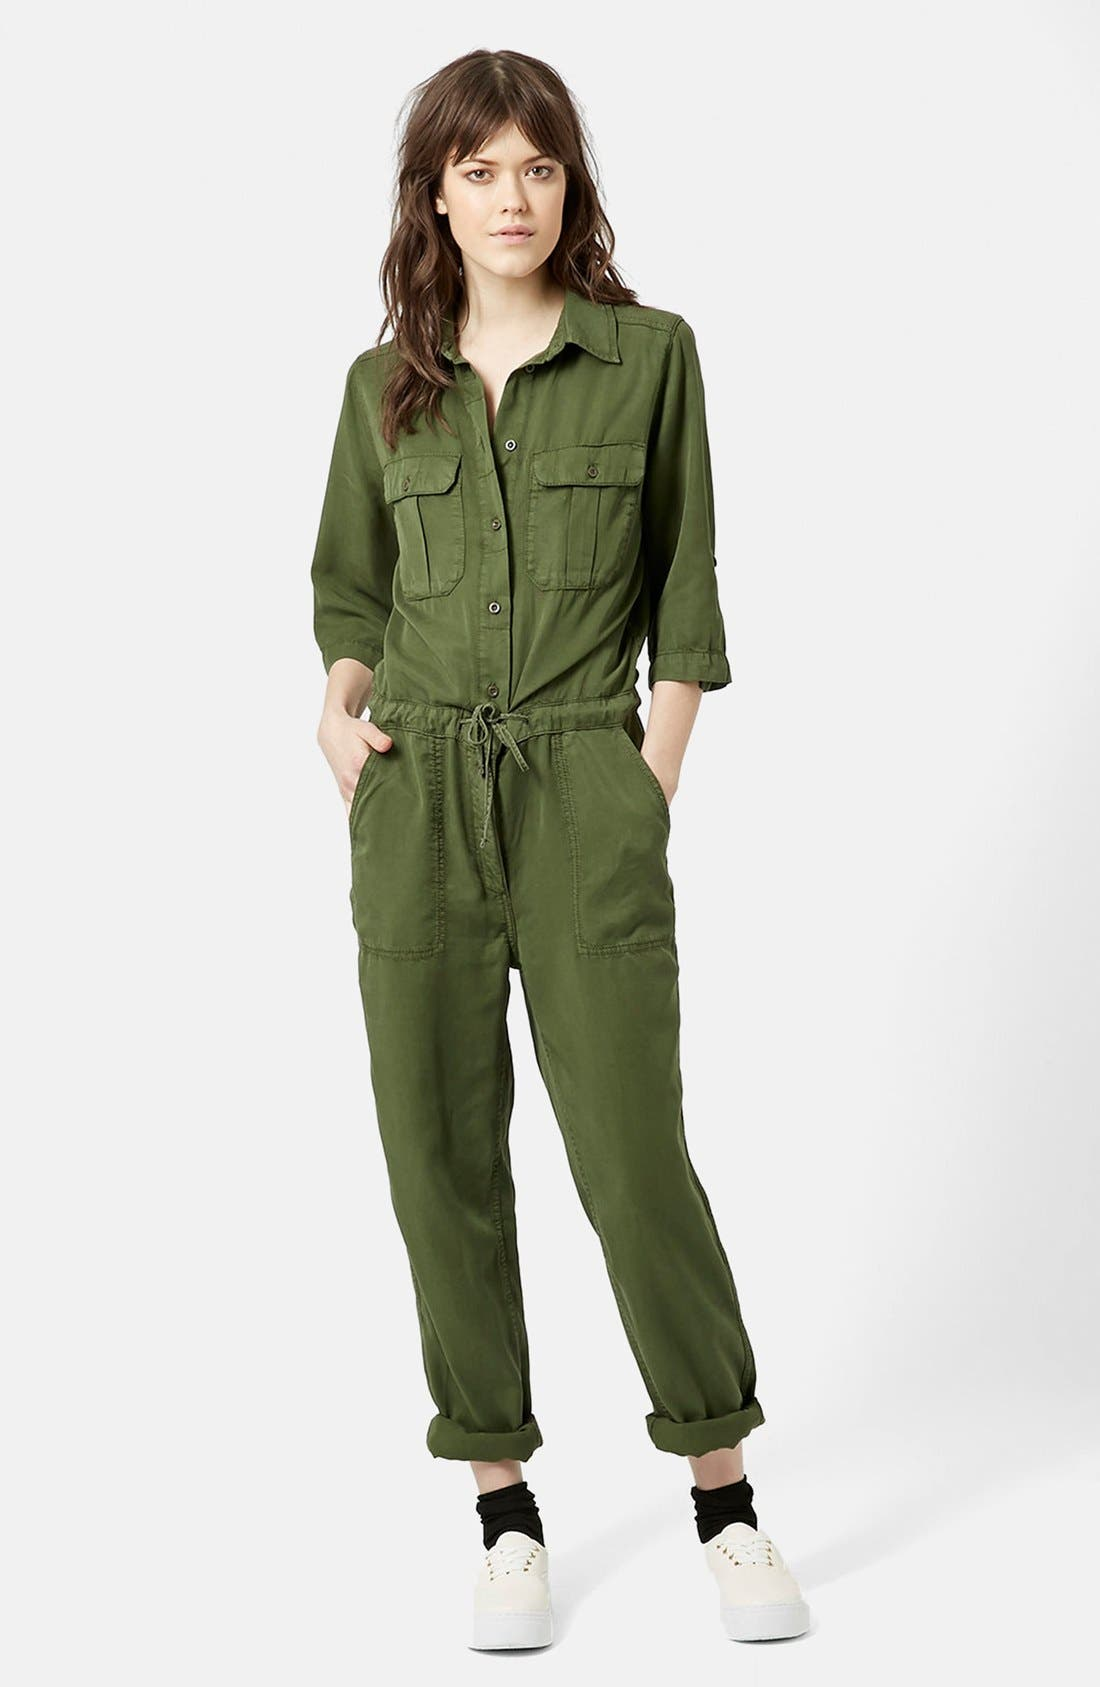 Alternate Image 1 Selected - Topshop 'All in One' Utility Jumpsuit